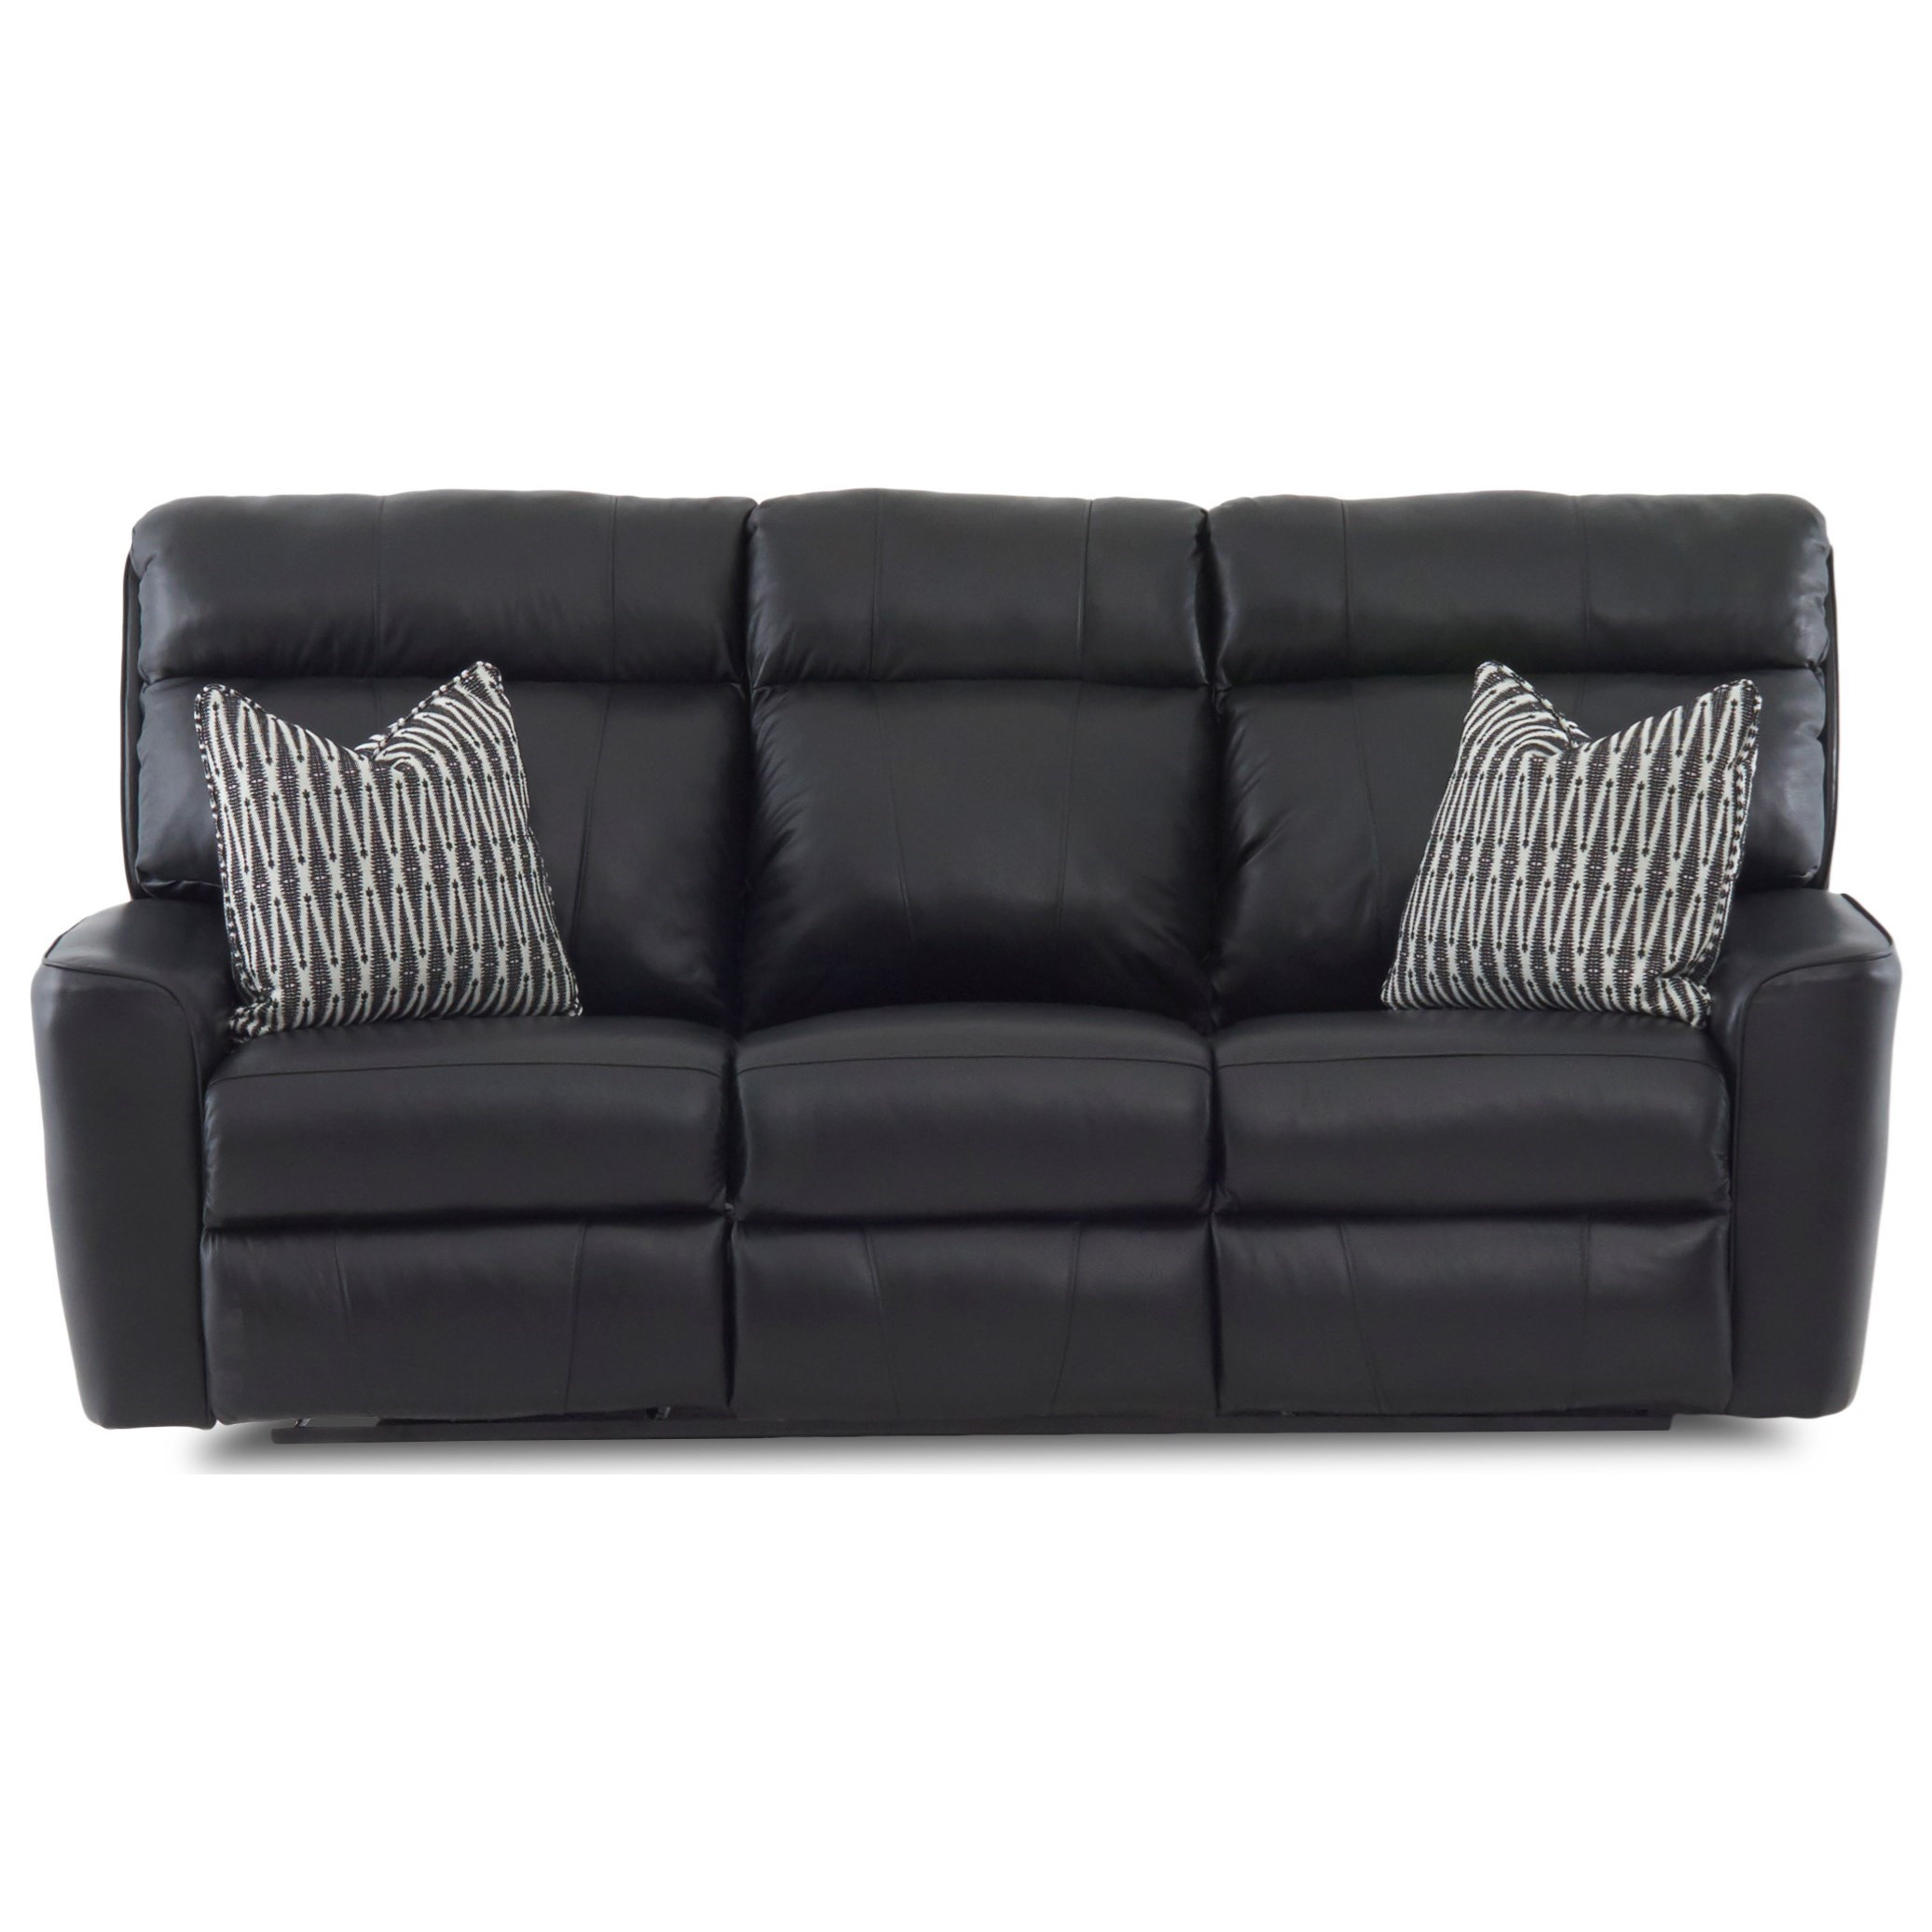 Reclining Sofa w/ Pillows